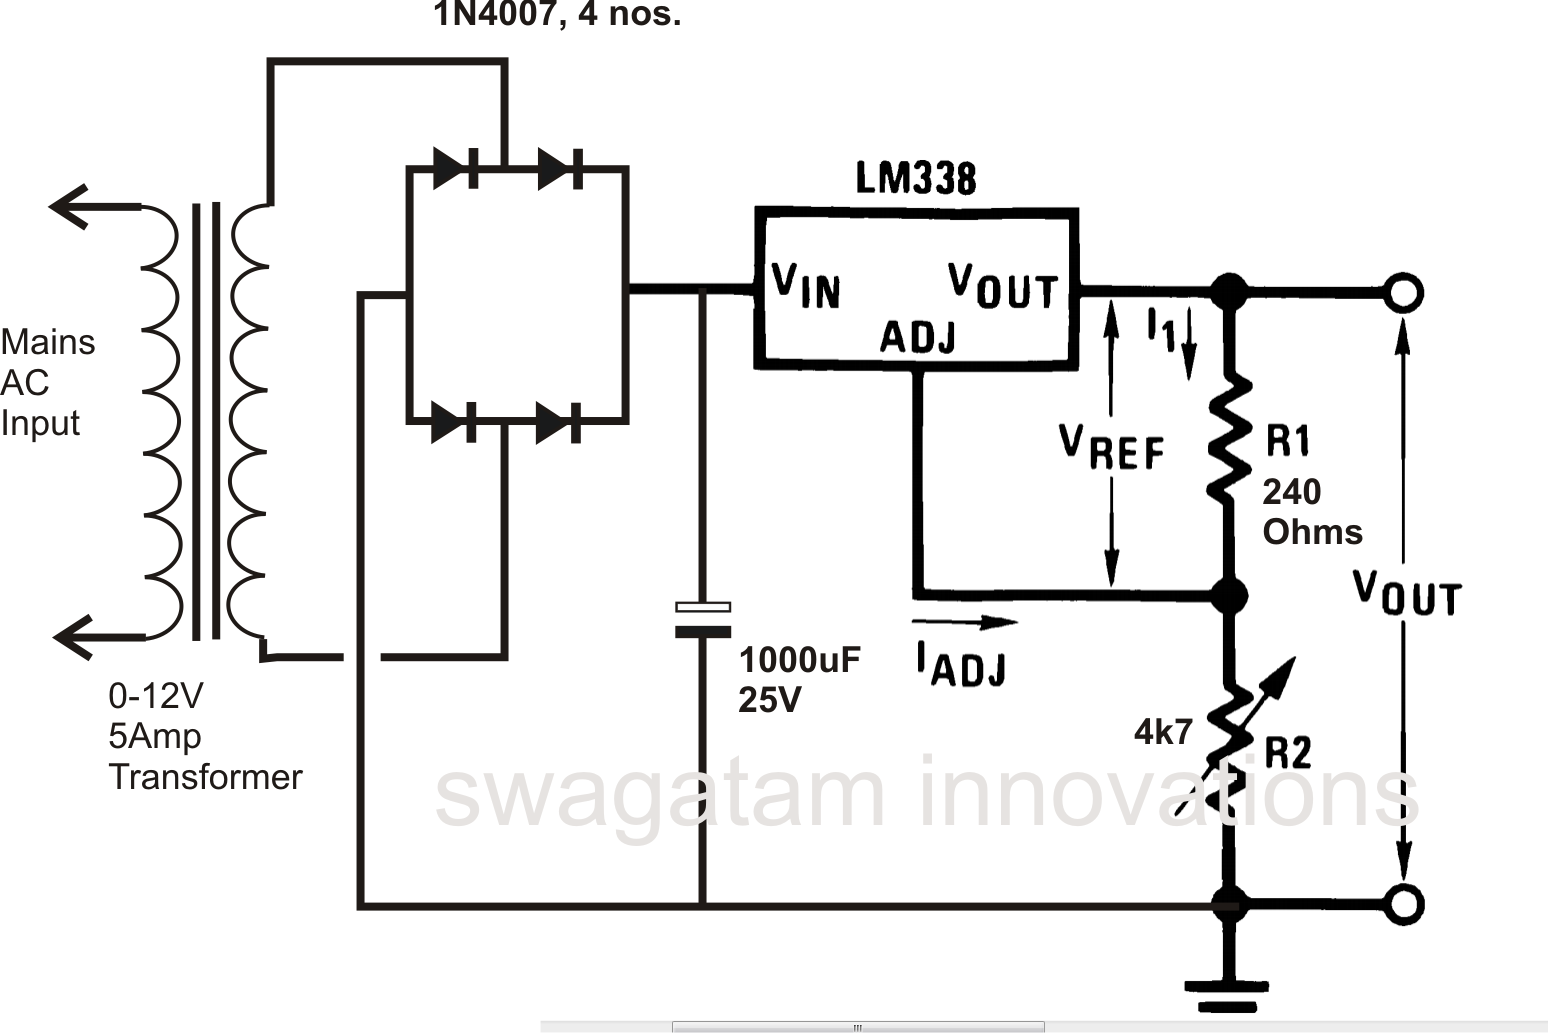 Power Supply: Design A Power Supply